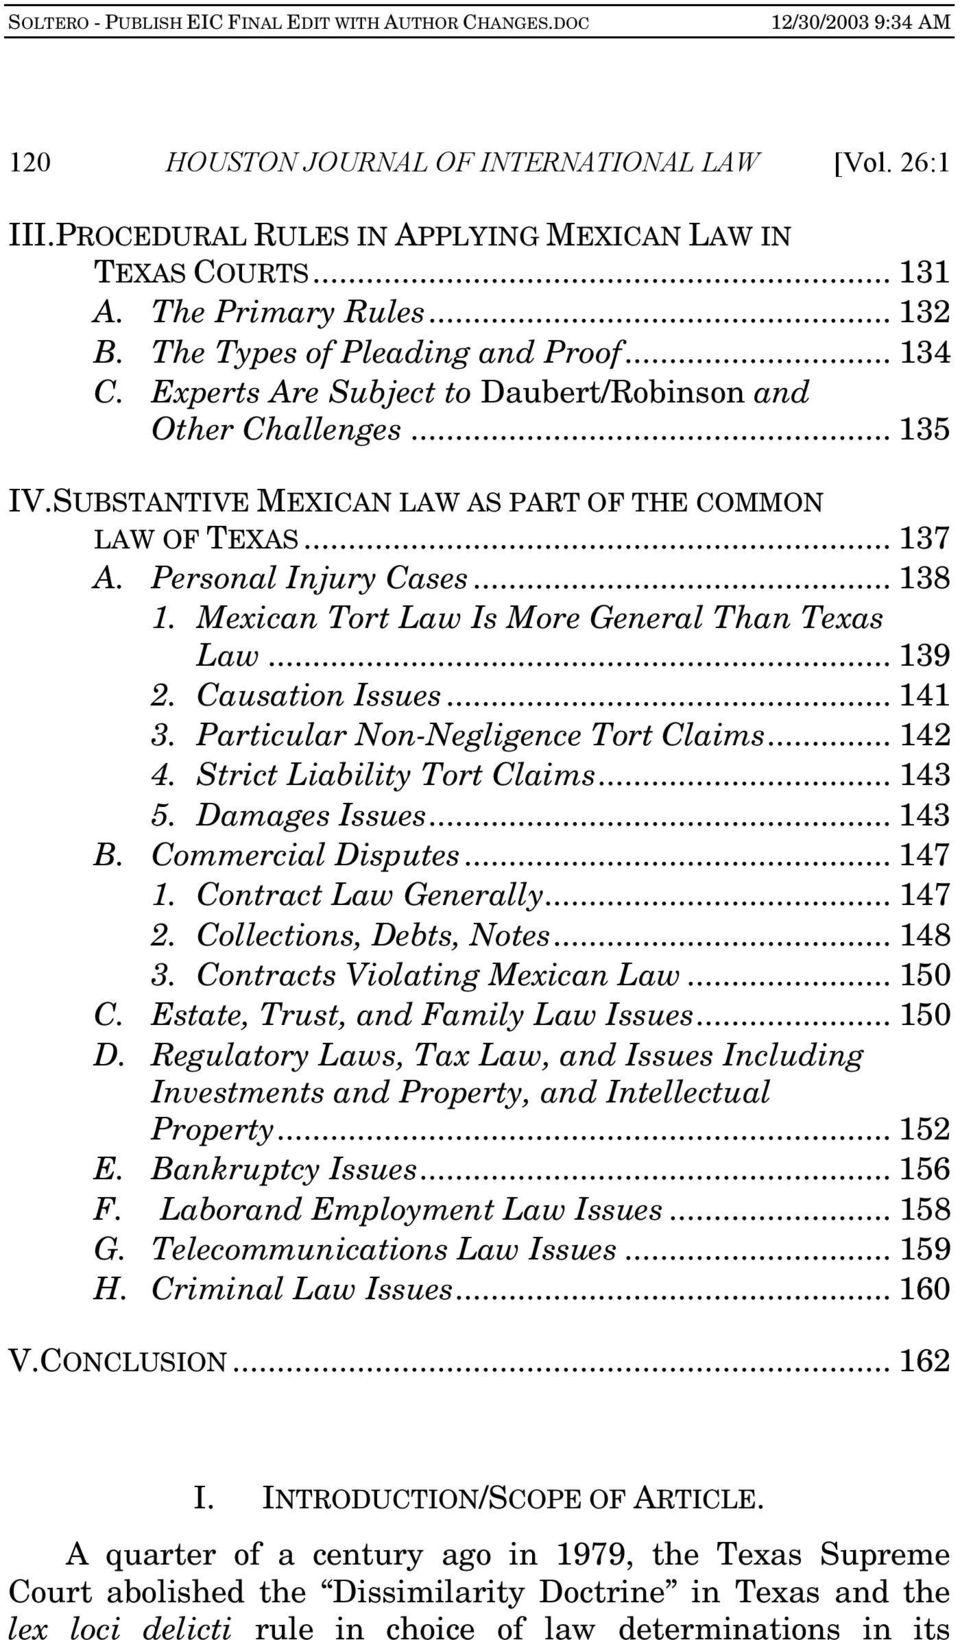 Mexican Tort Law Is More General Than Texas Law... 139 2. Causation Issues... 141 3. Particular Non-Negligence Tort Claims... 142 4. Strict Liability Tort Claims... 143 5. Damages Issues... 143 B.